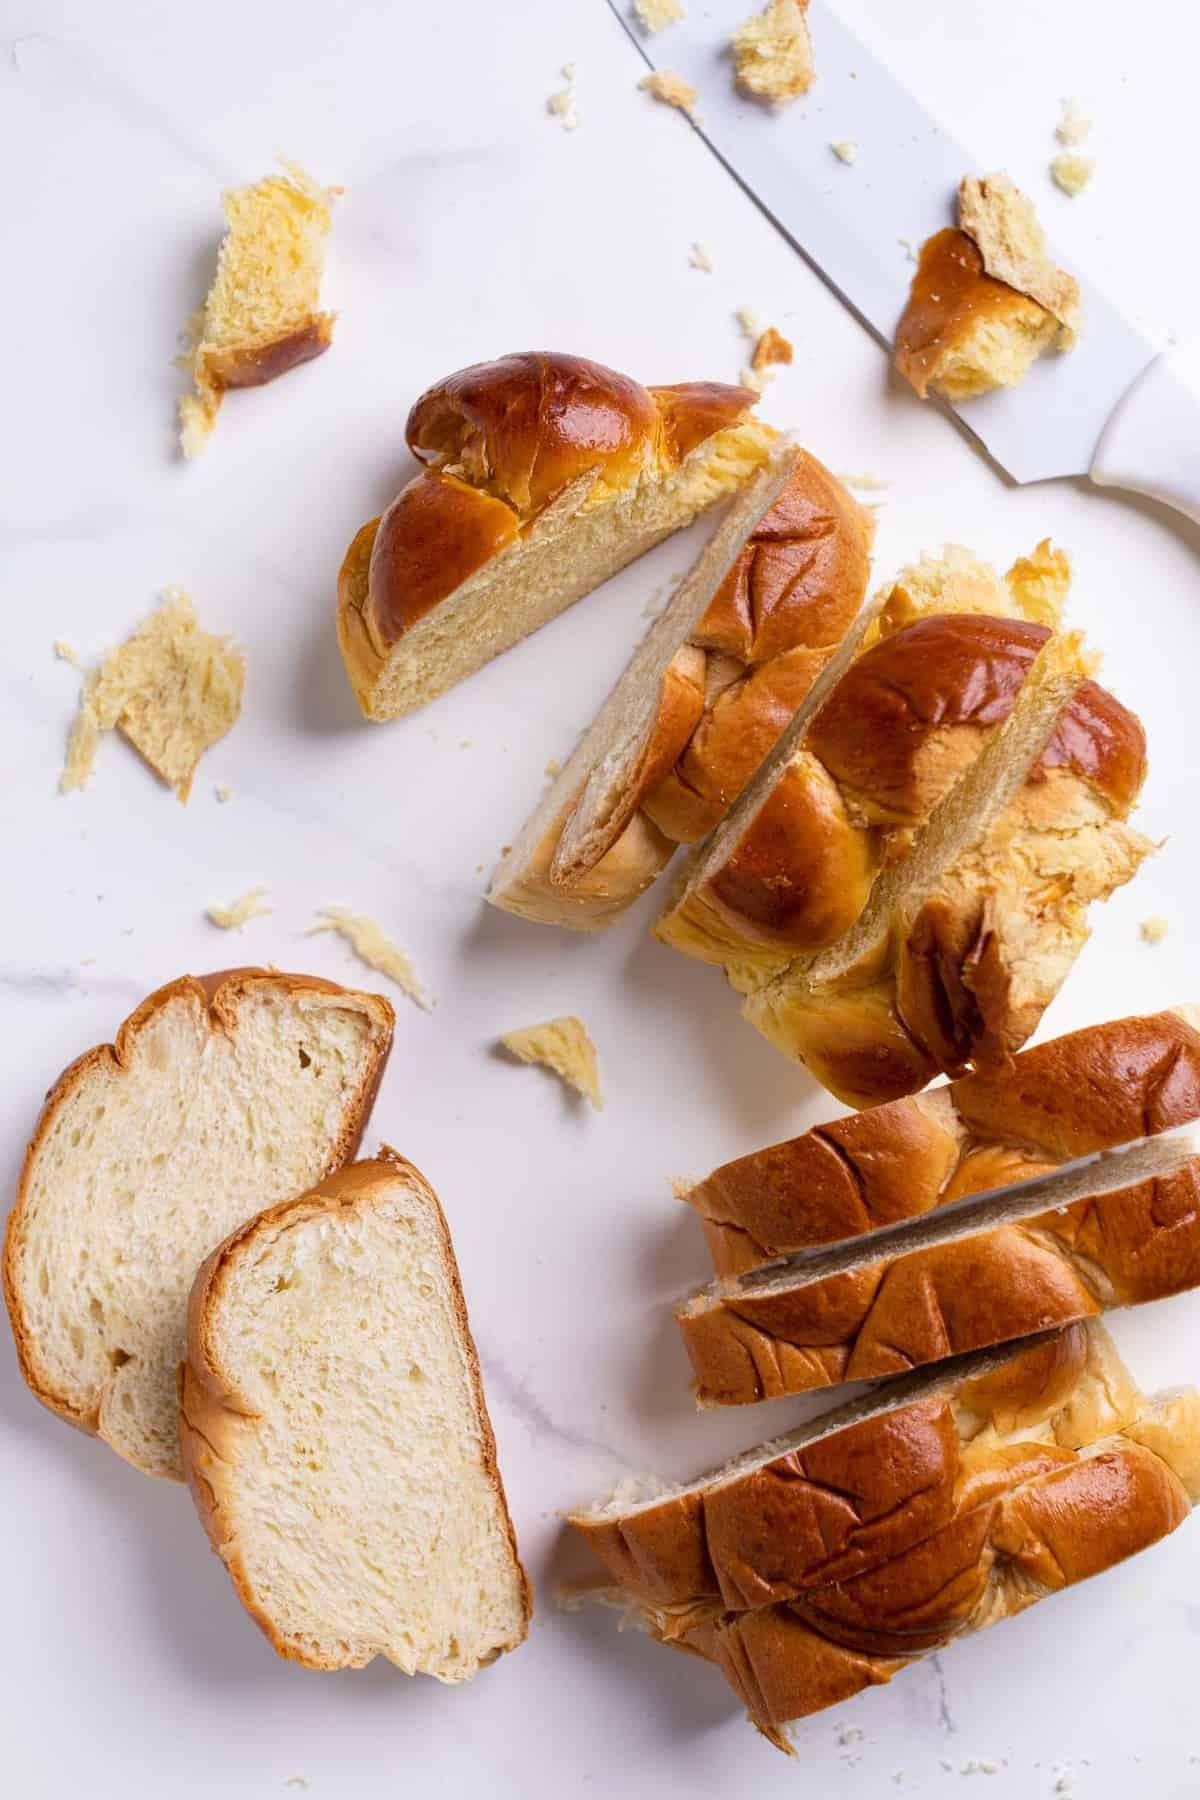 overhead of slices of challah bread on a marble counter